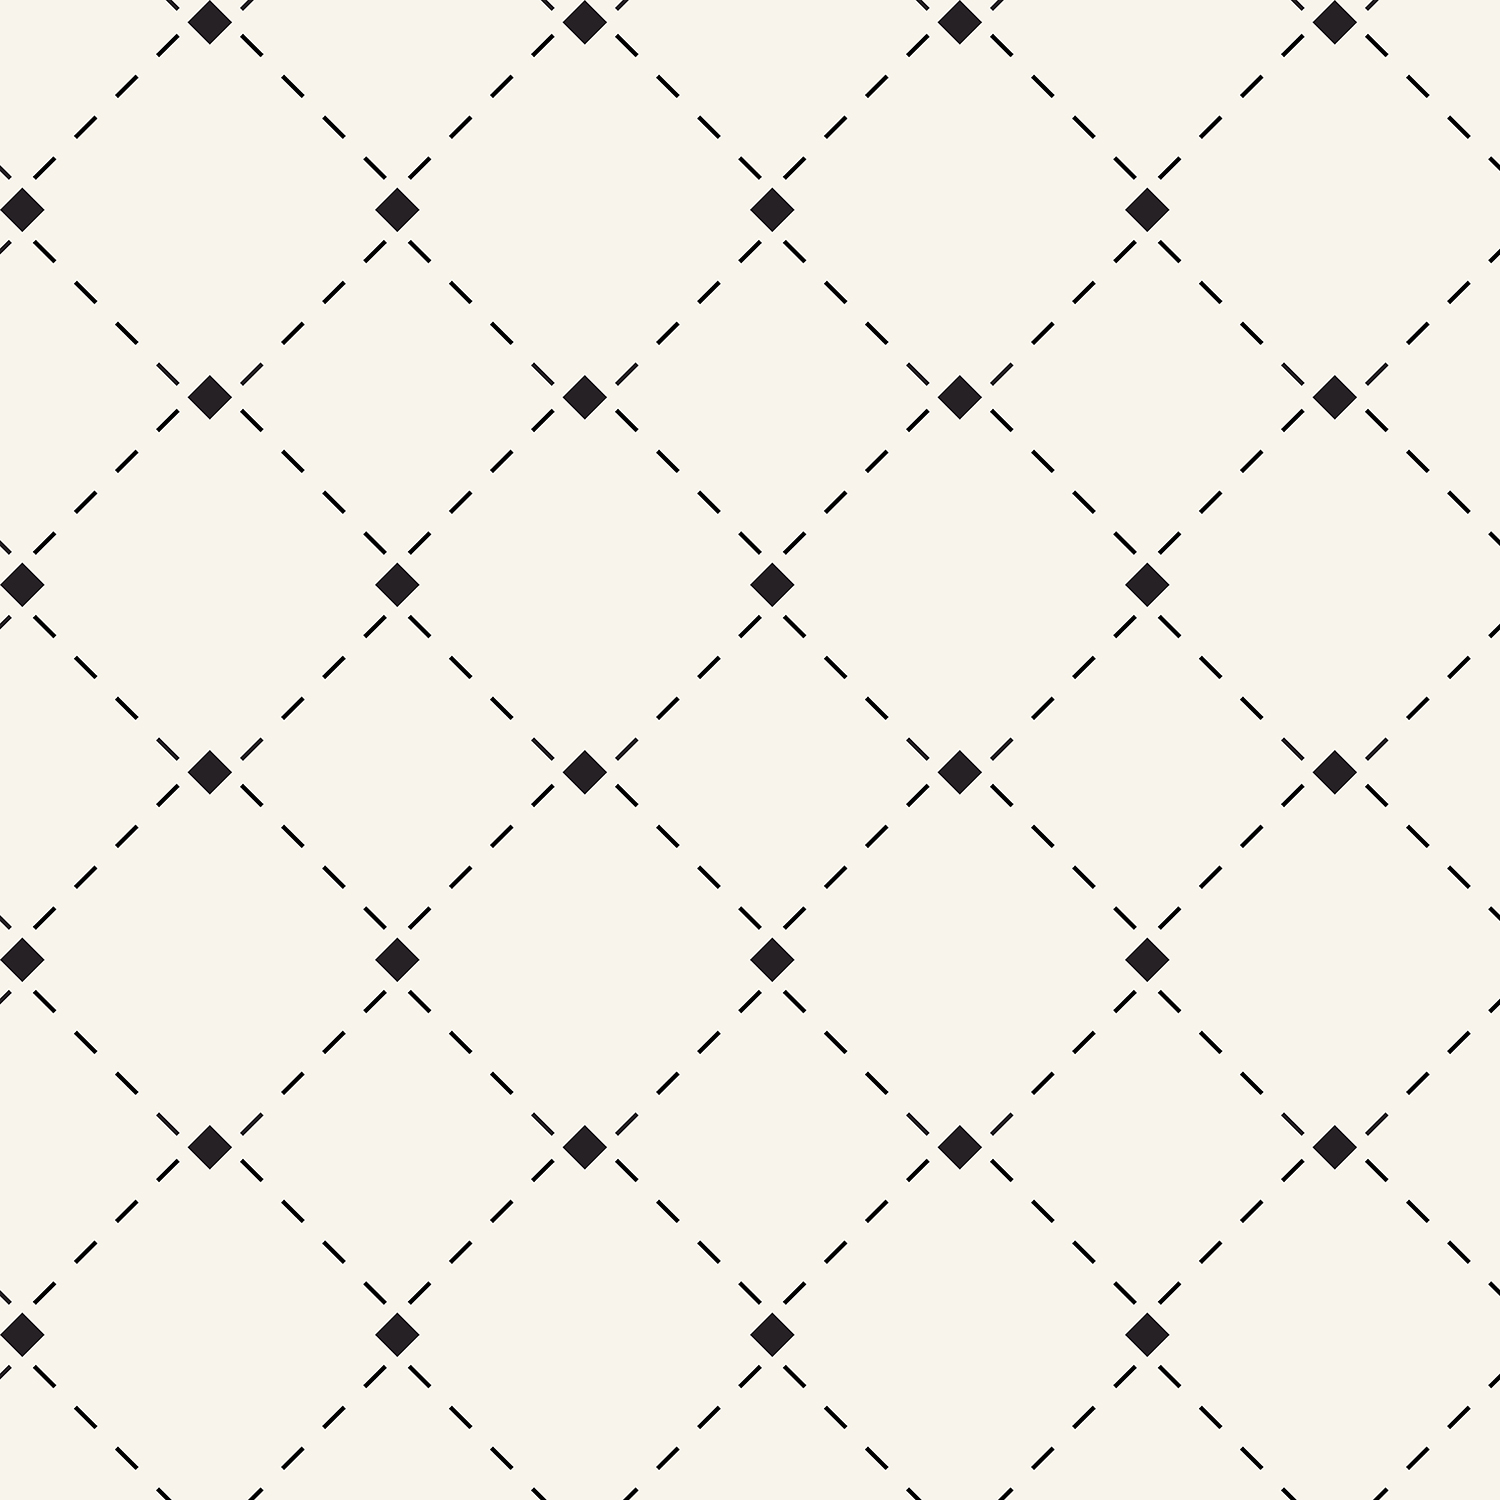 Diamond Dash Patterns example image 5